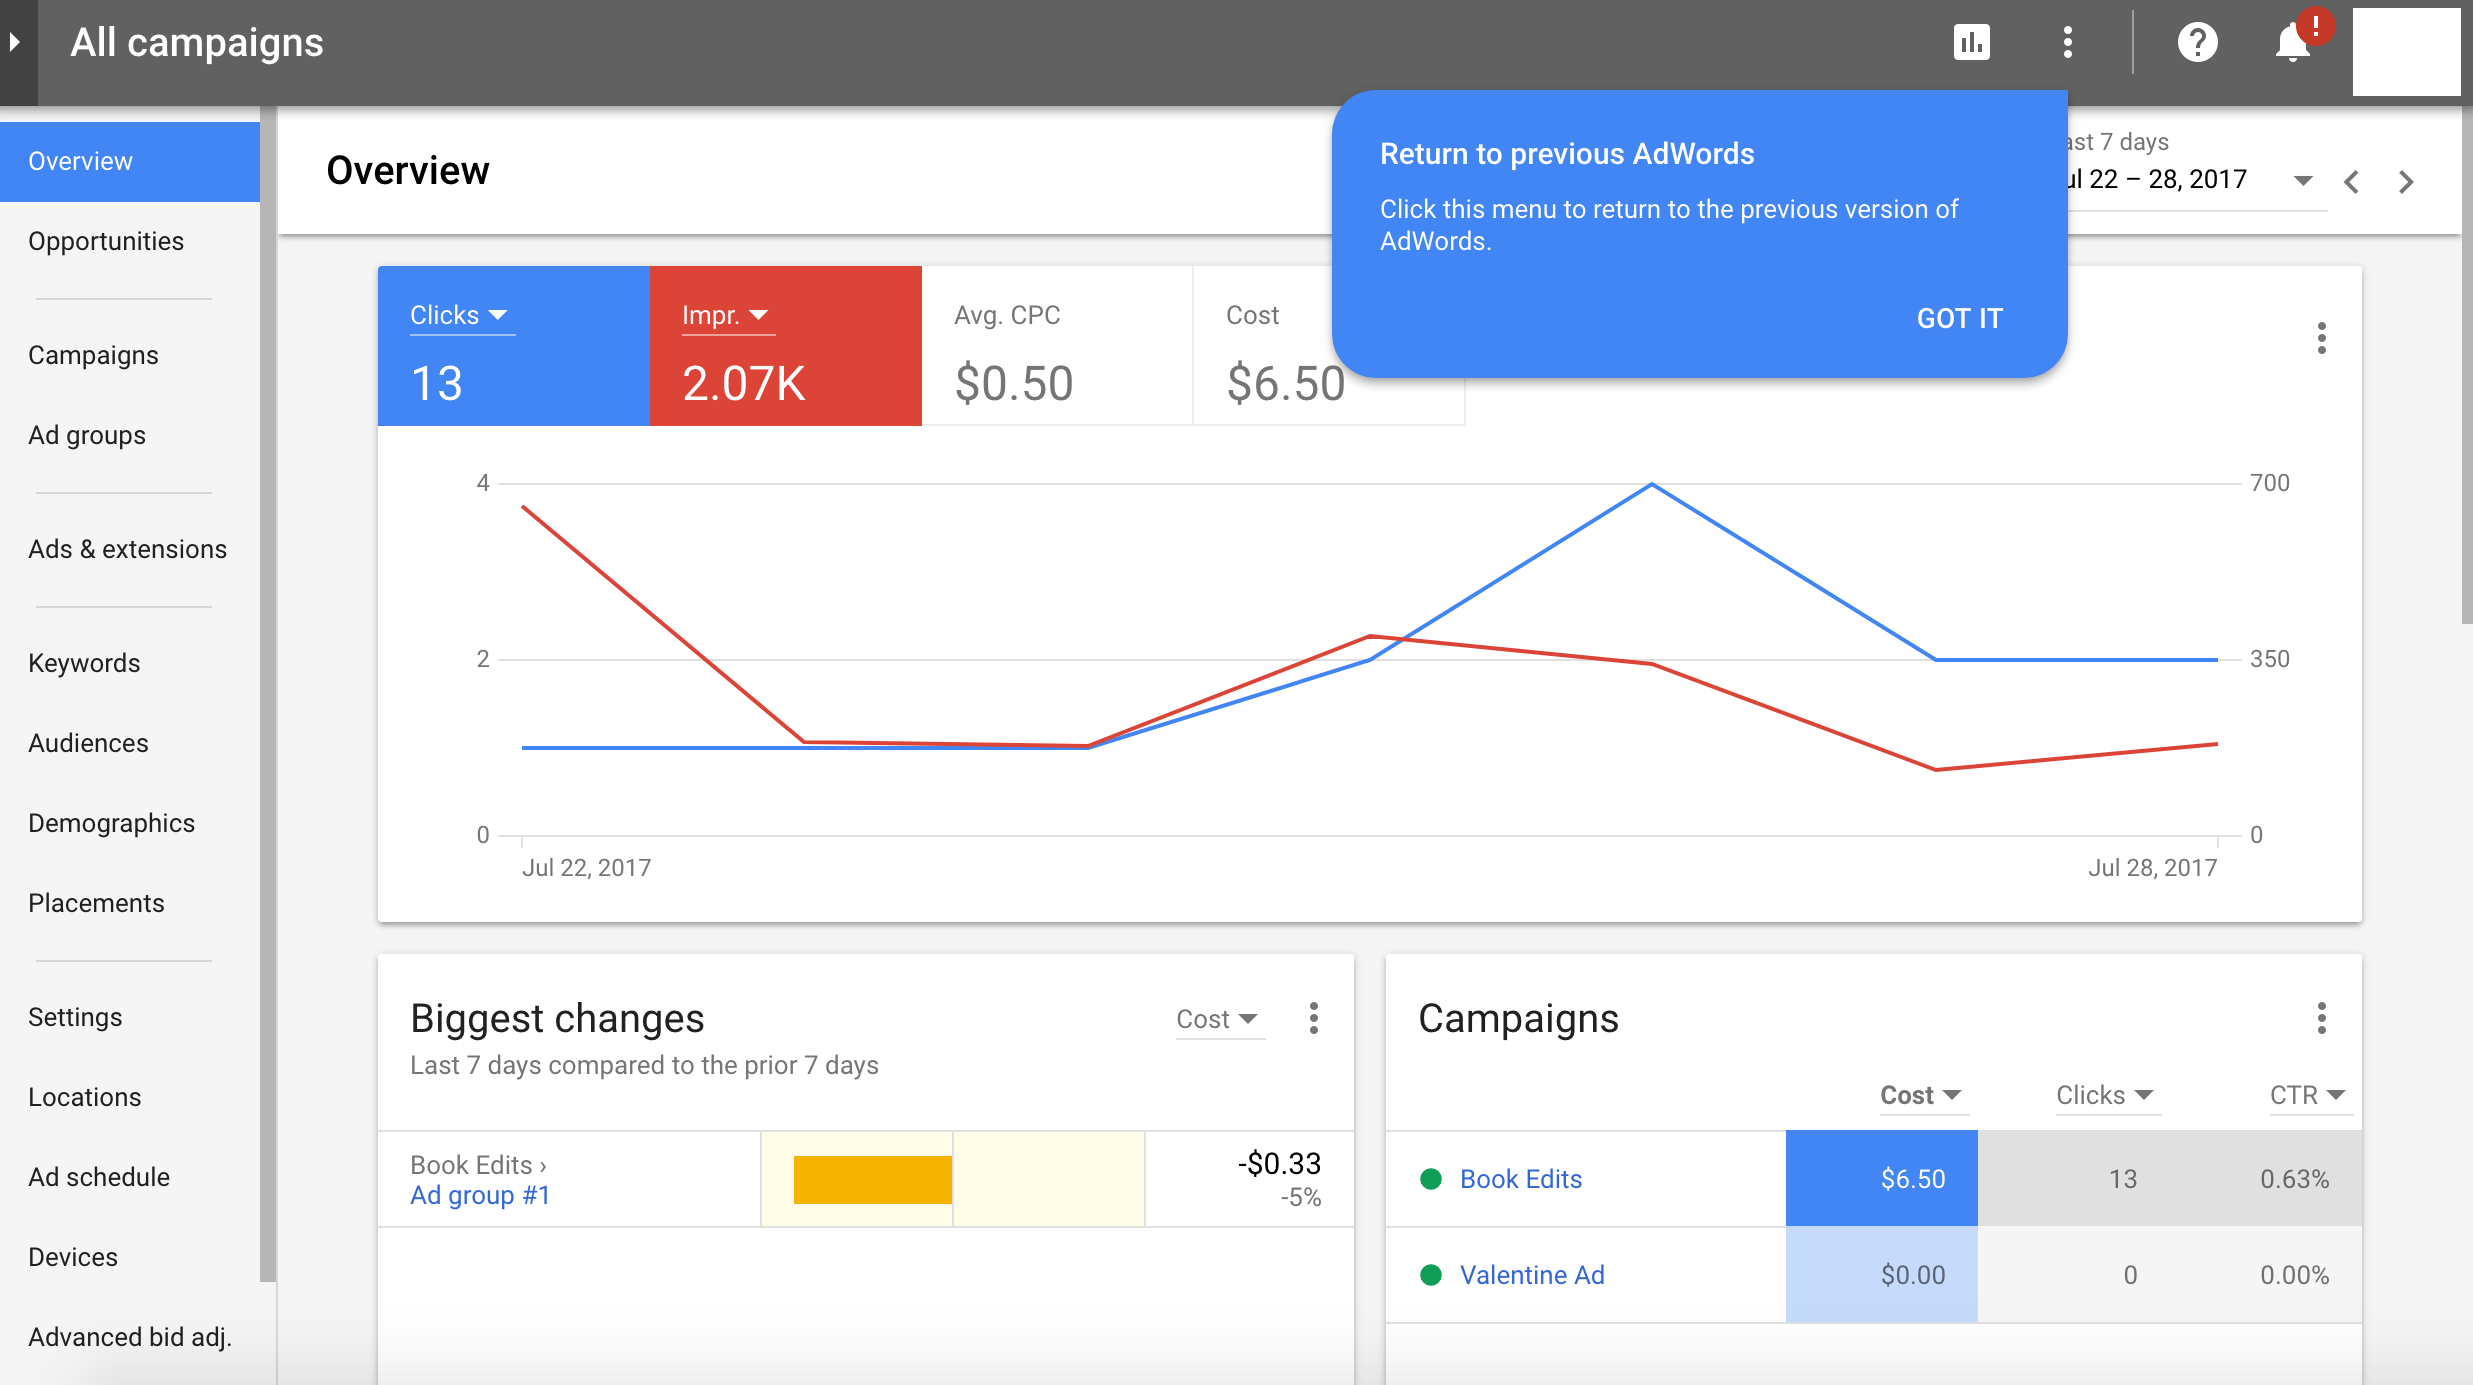 Provides campaign overview so marketers can review past campaigns, changes in ad results, and average CPC